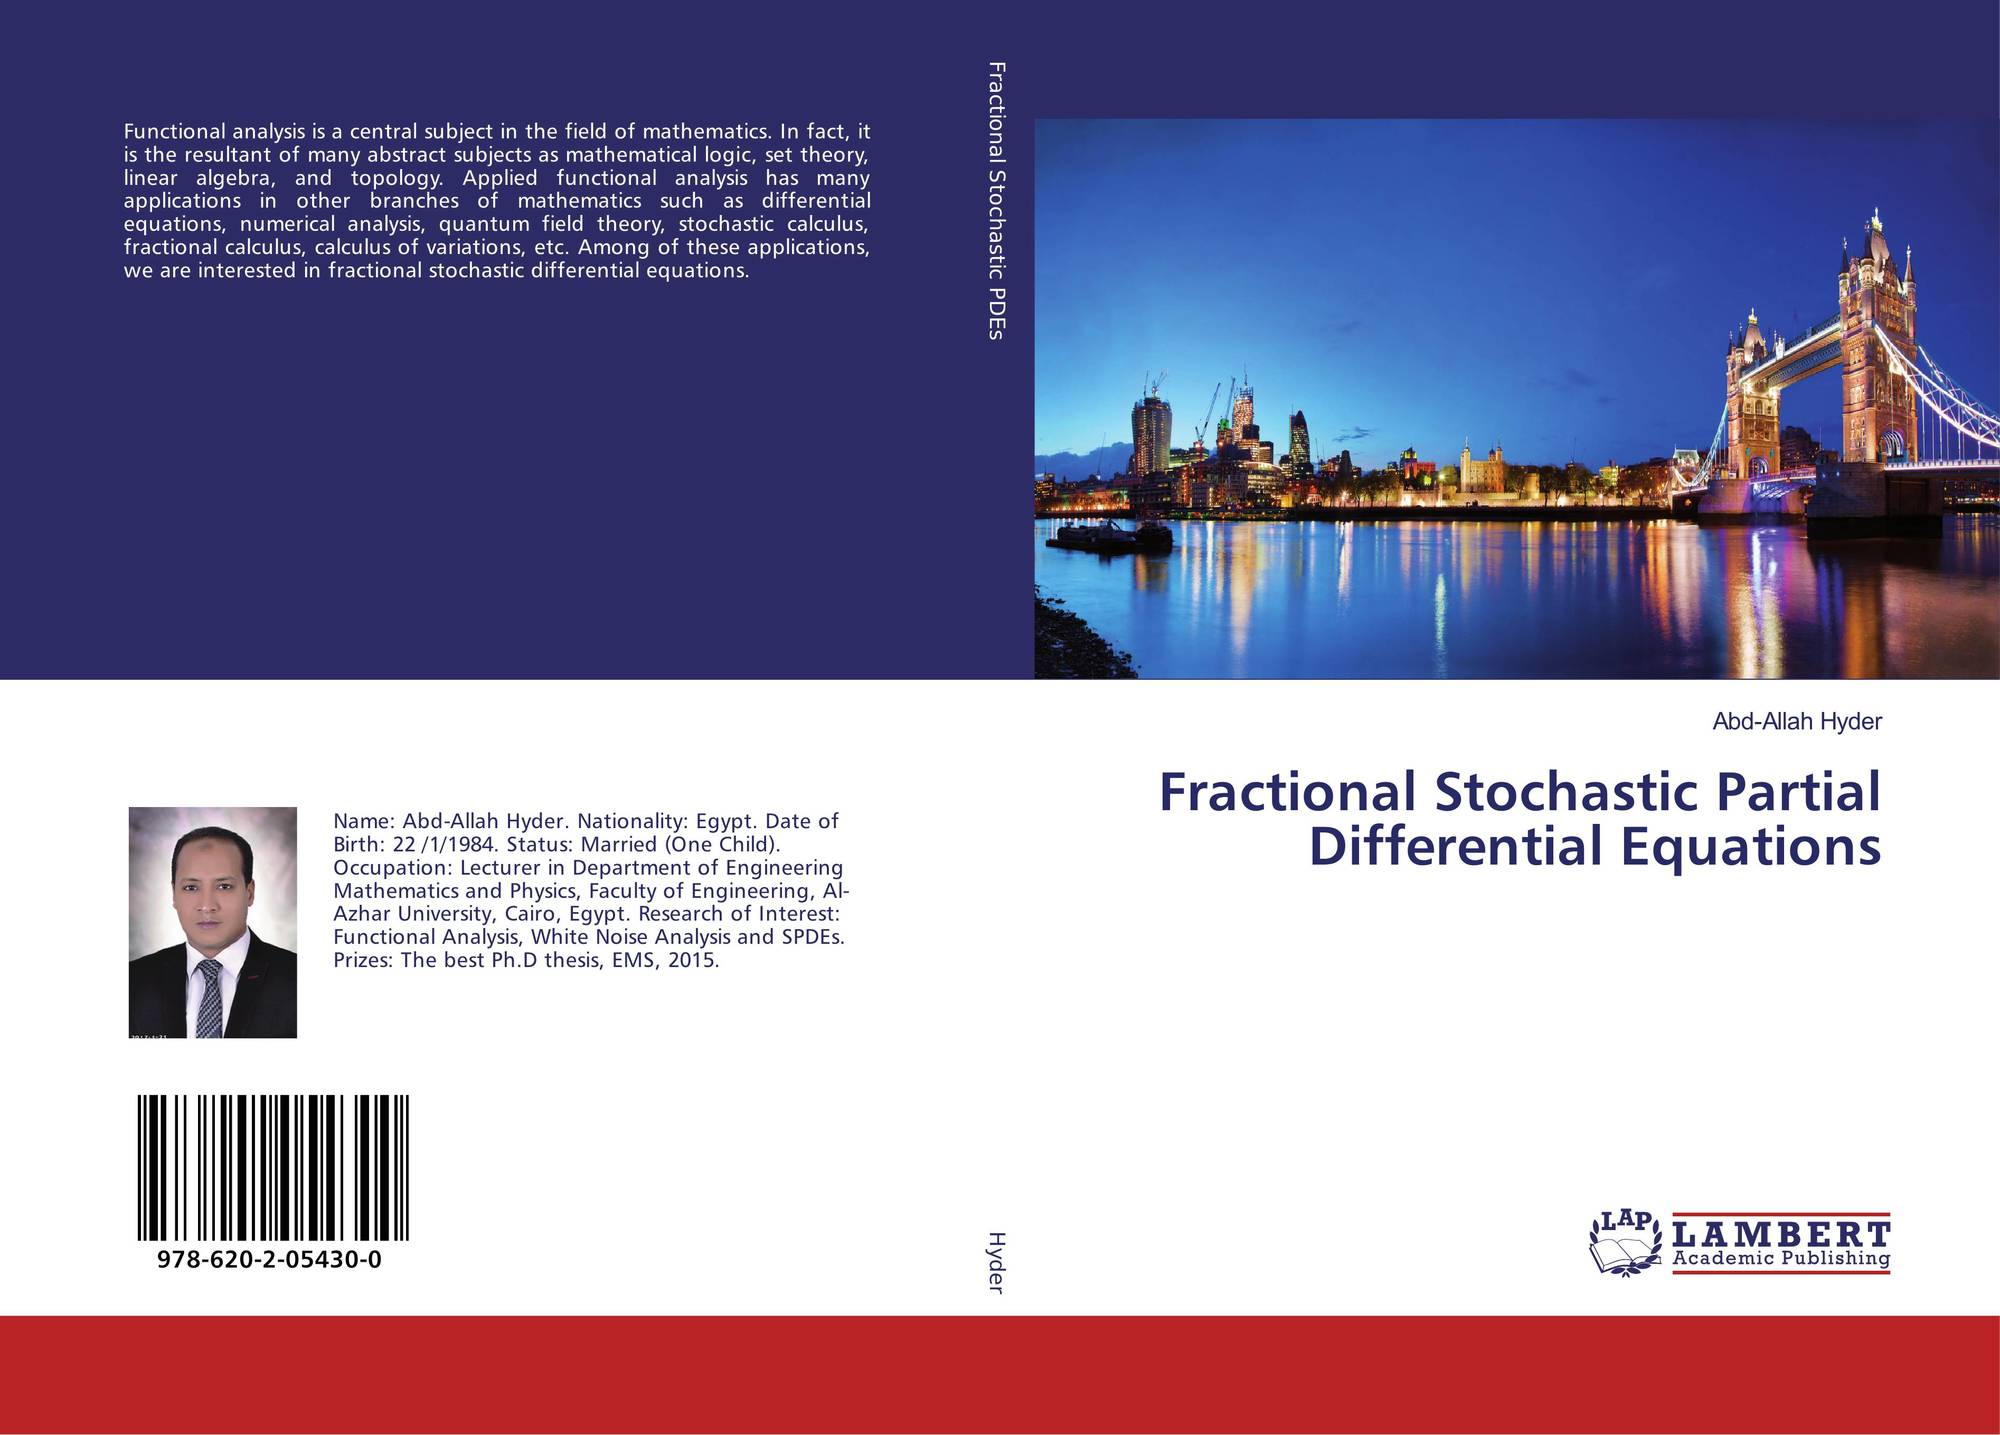 Fractional Stochastic Partial Differential Equations, 978